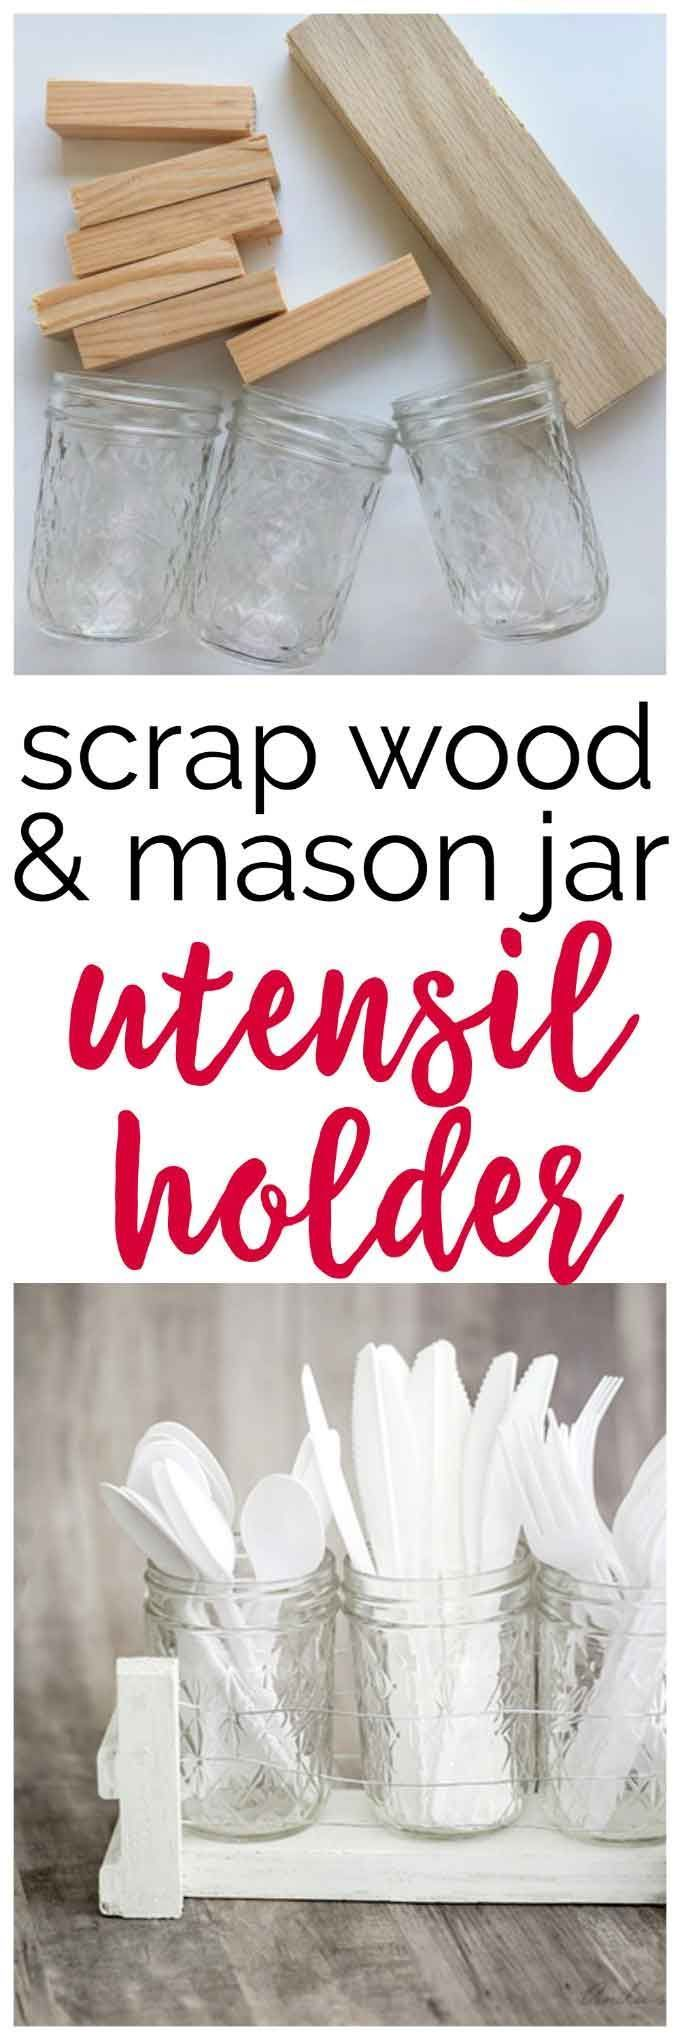 Best Diy Crafts Ideas For Your Home : Easy Mason Jar utensil organizer made using scrap wood and mason jars!